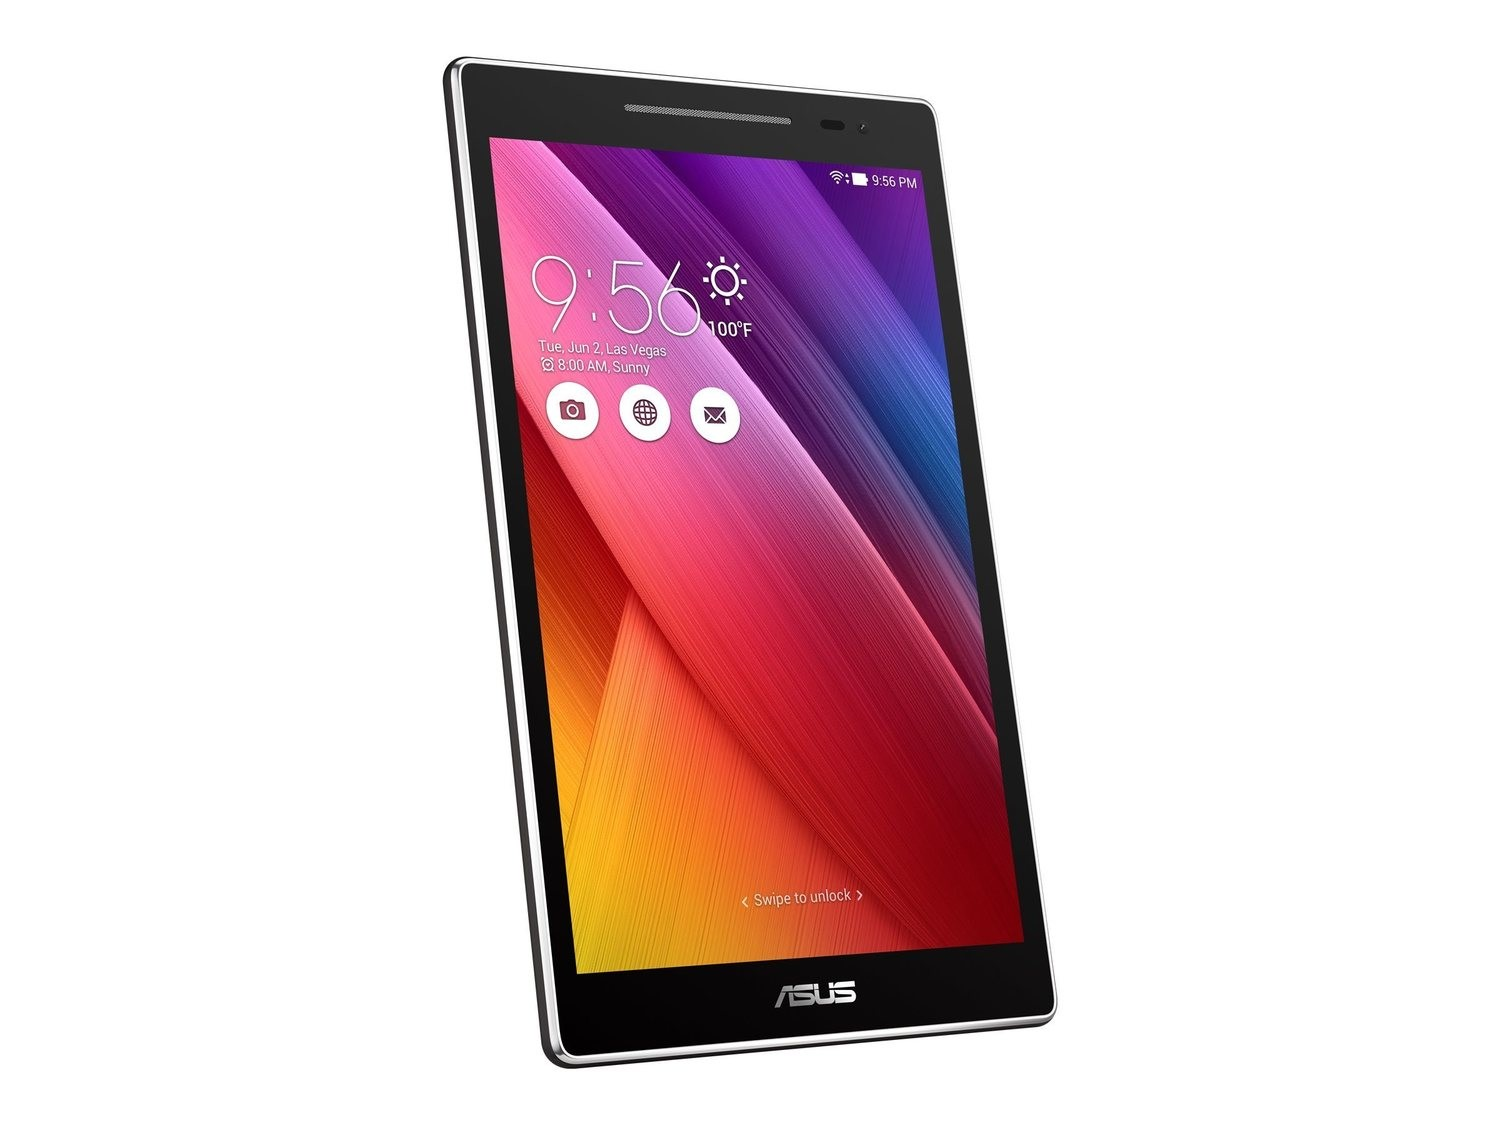 "ASUS ZenPad 8.0 Z380M - Quad Core / 2GB Ram/16GB Storage/Android 6/8"" 1280x800 Gorilla Glass Display"